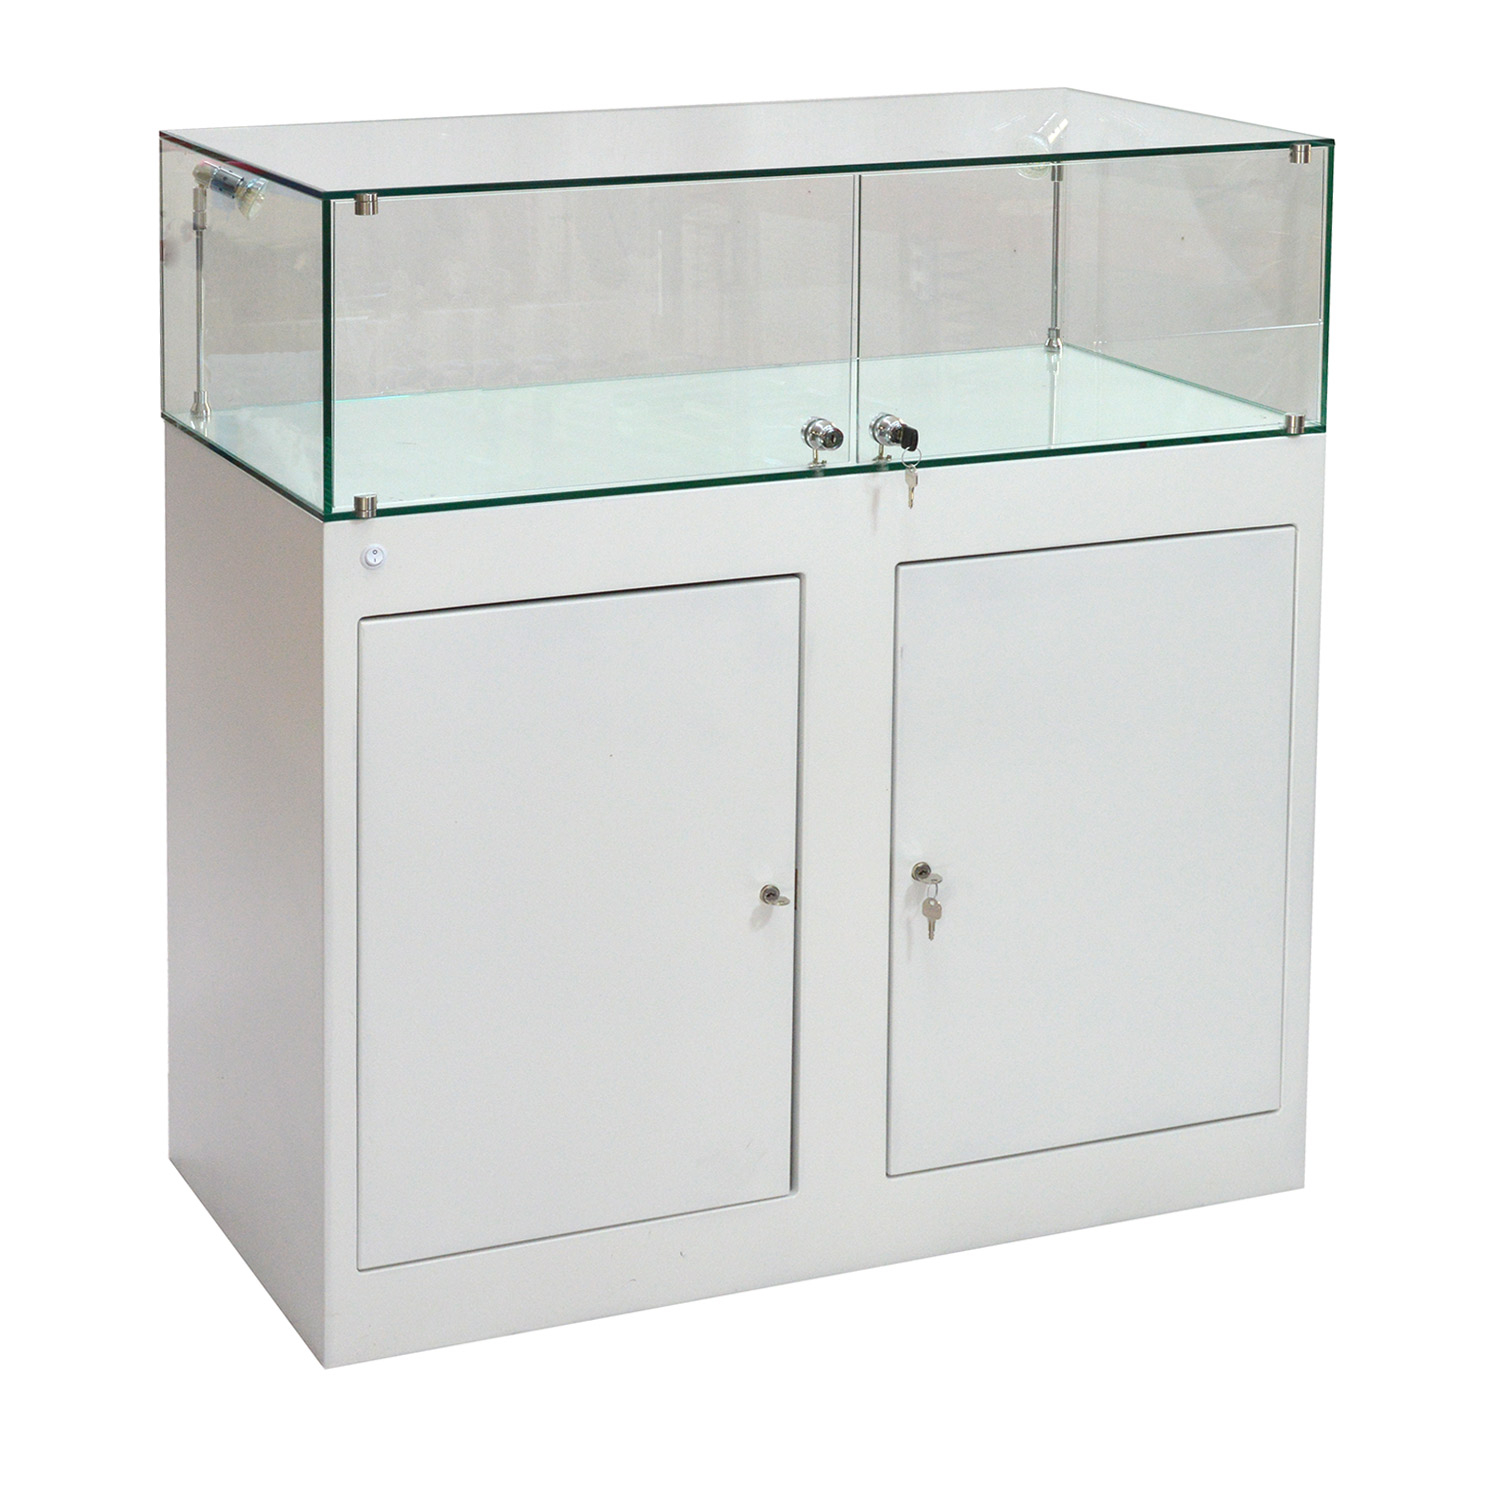 Locked Display Cabinets Best Cabinets Decoration for dimensions 1500 X 1500